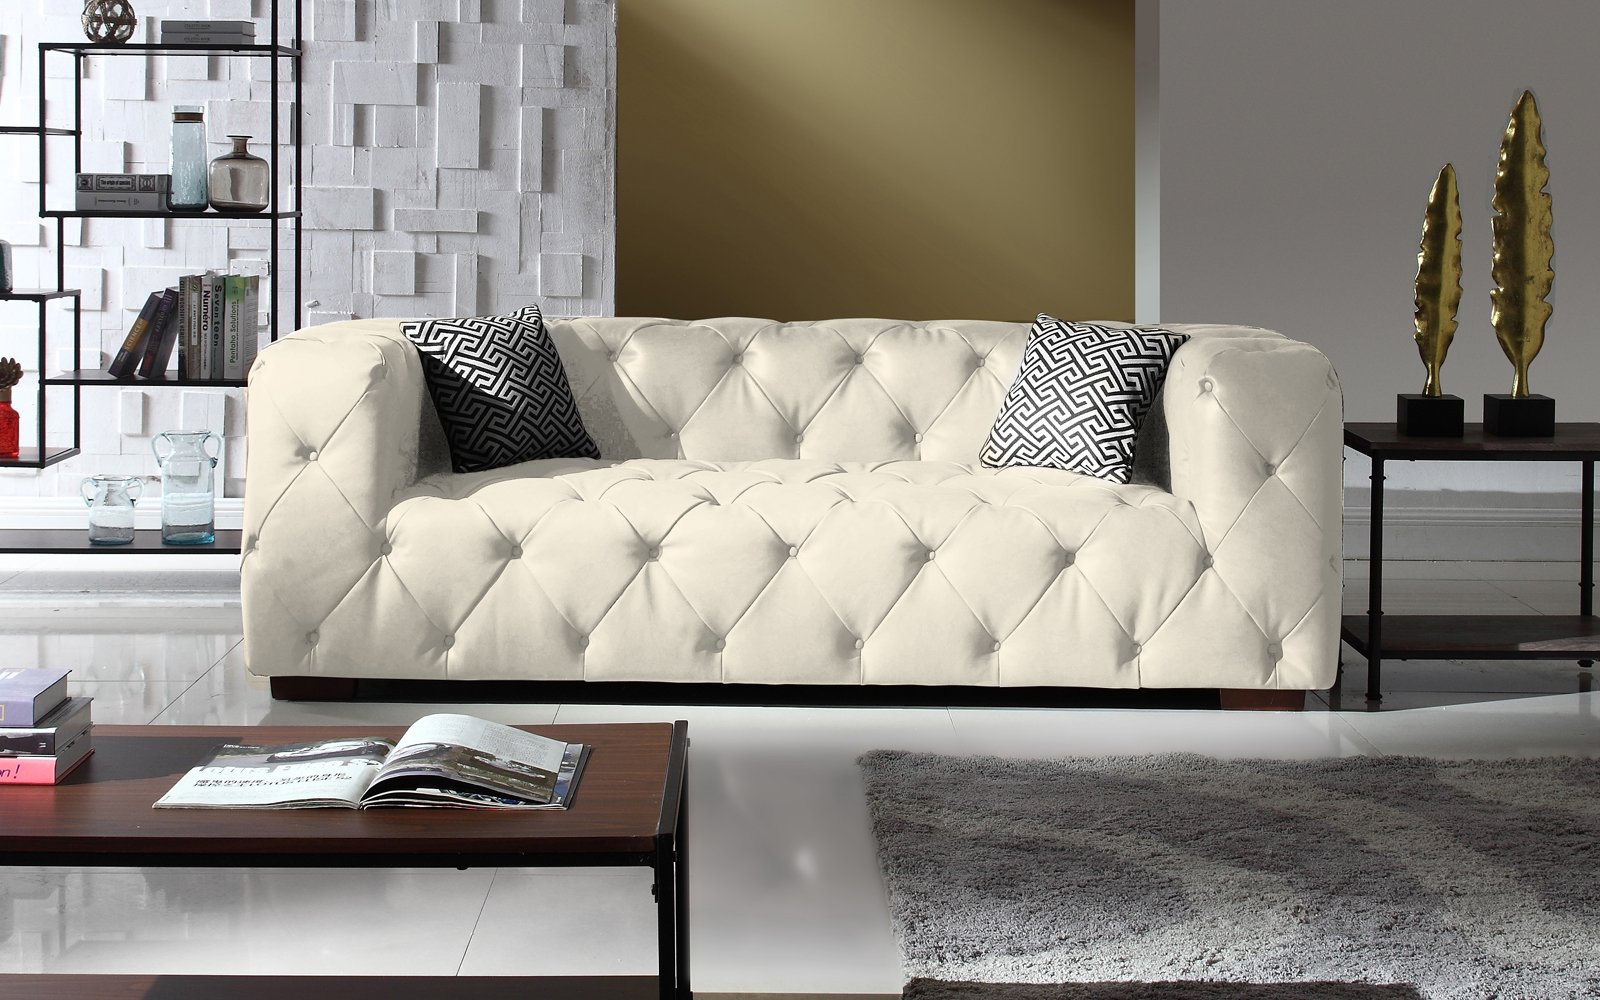 Details about Large Tufted Italian Leather Chesterfield Sofa, Classic  Living Room, Off White